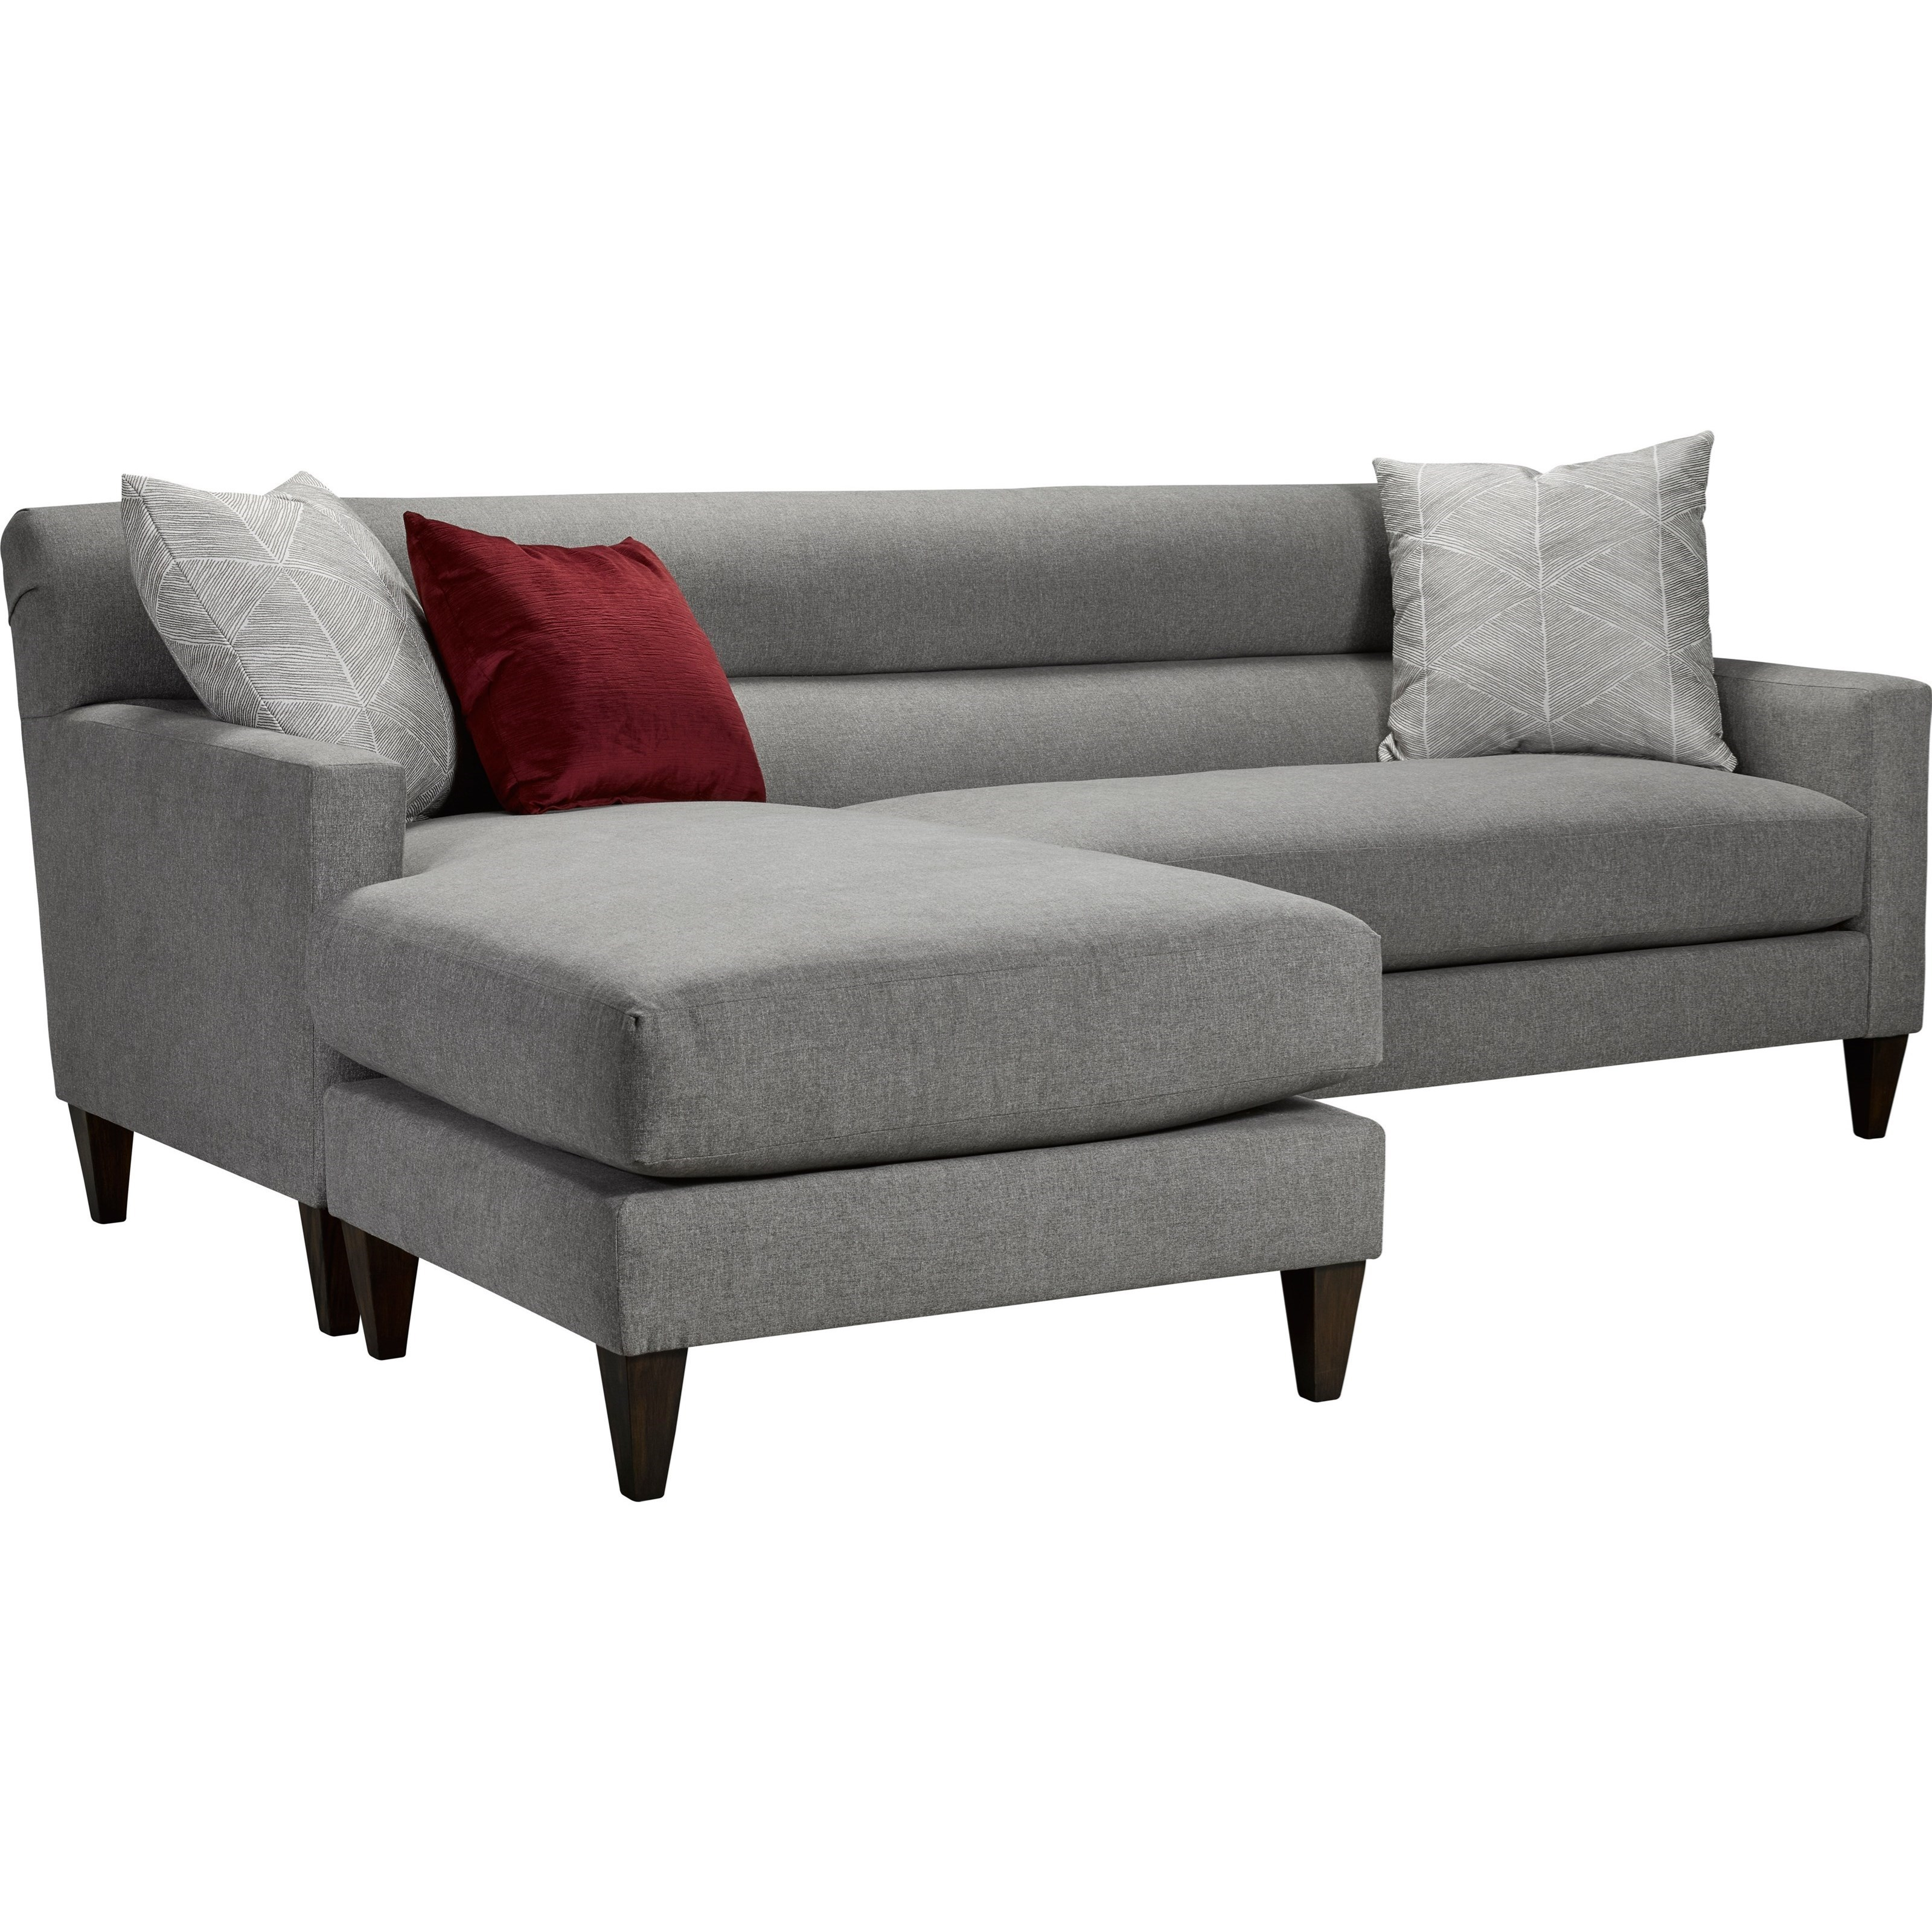 Broyhill Furniture Laclede Contemporary Convertible Sofa With Chaise